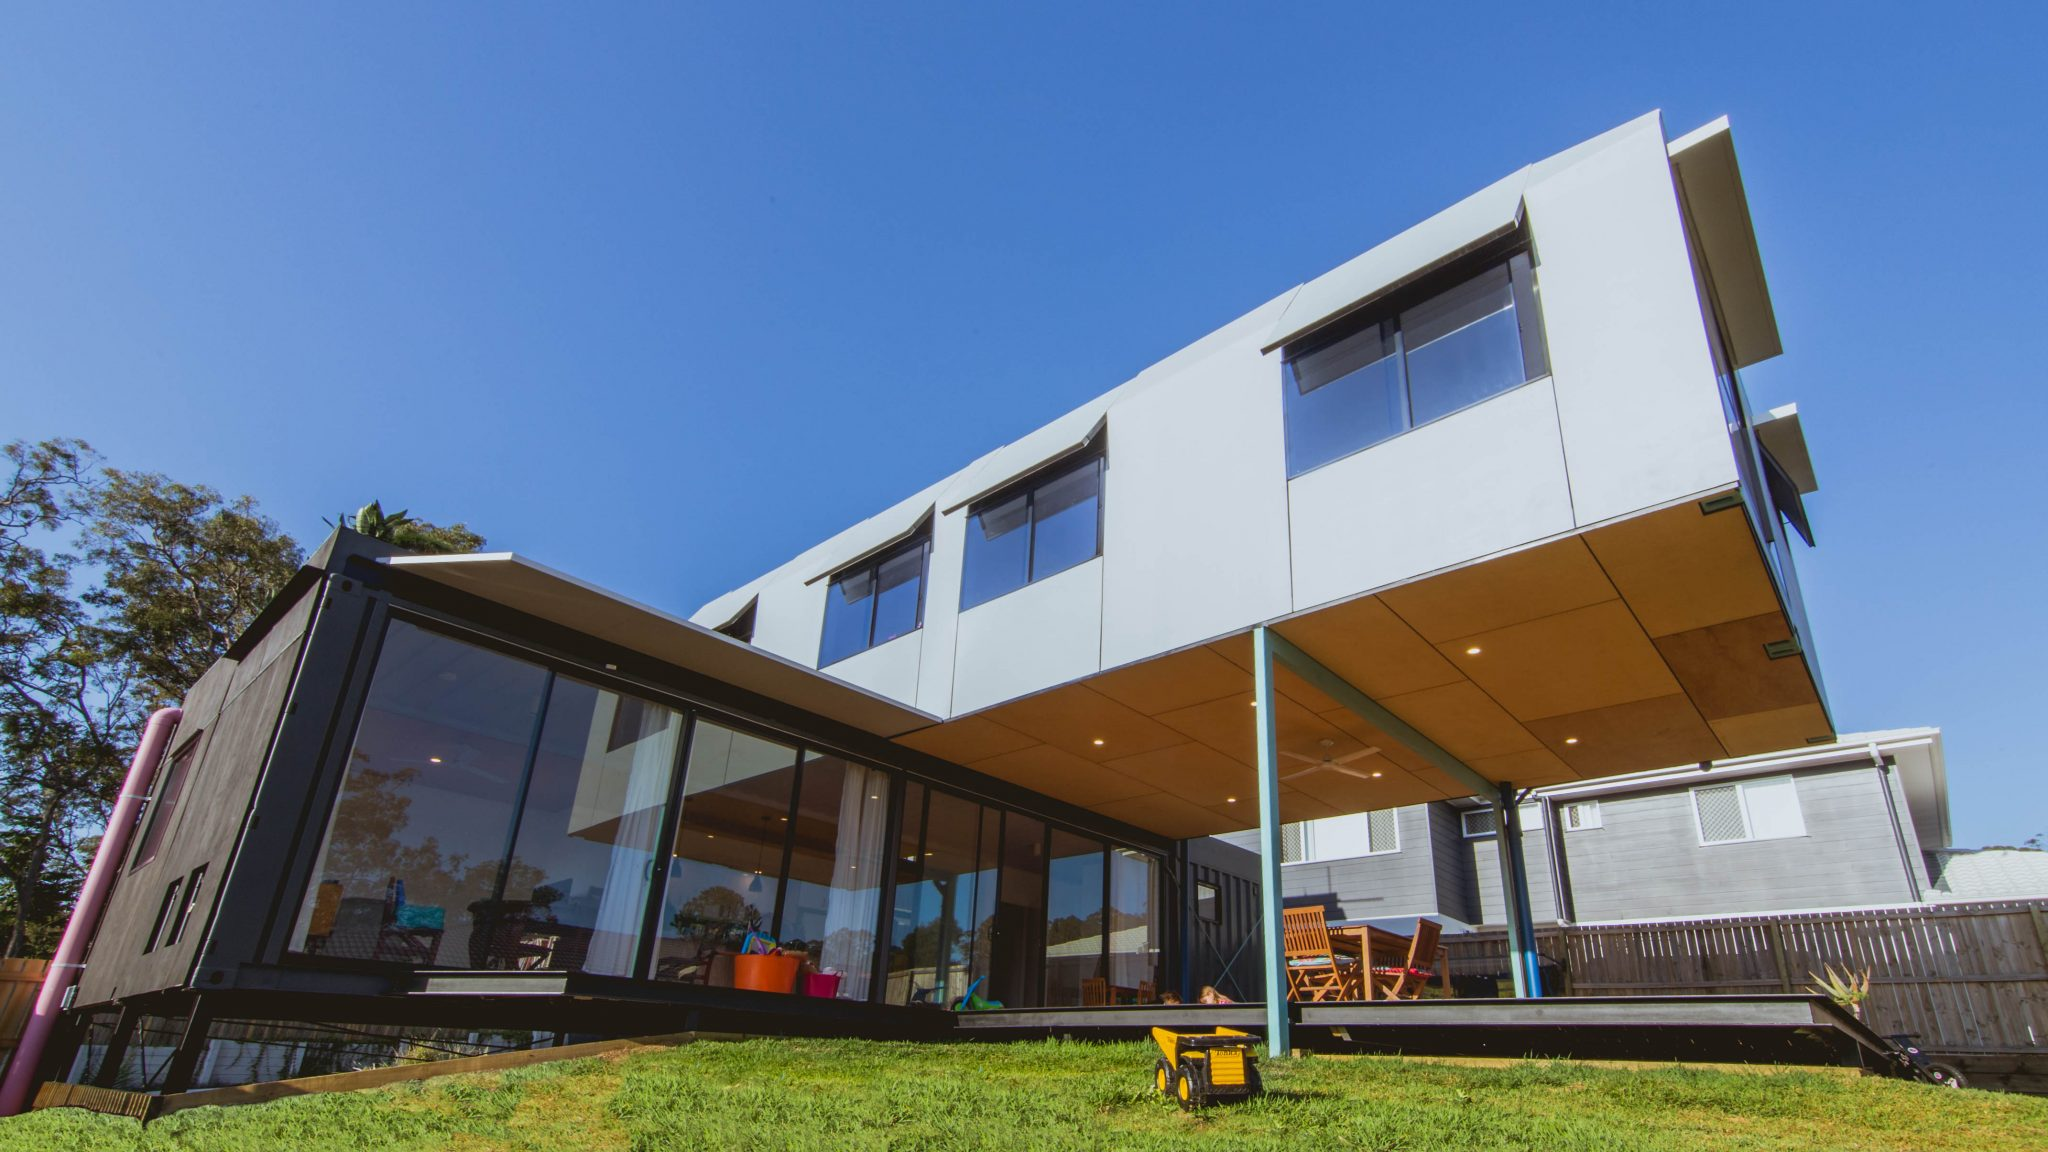 Oxley modular house australia pop blocks for Prefabricated shipping container homes